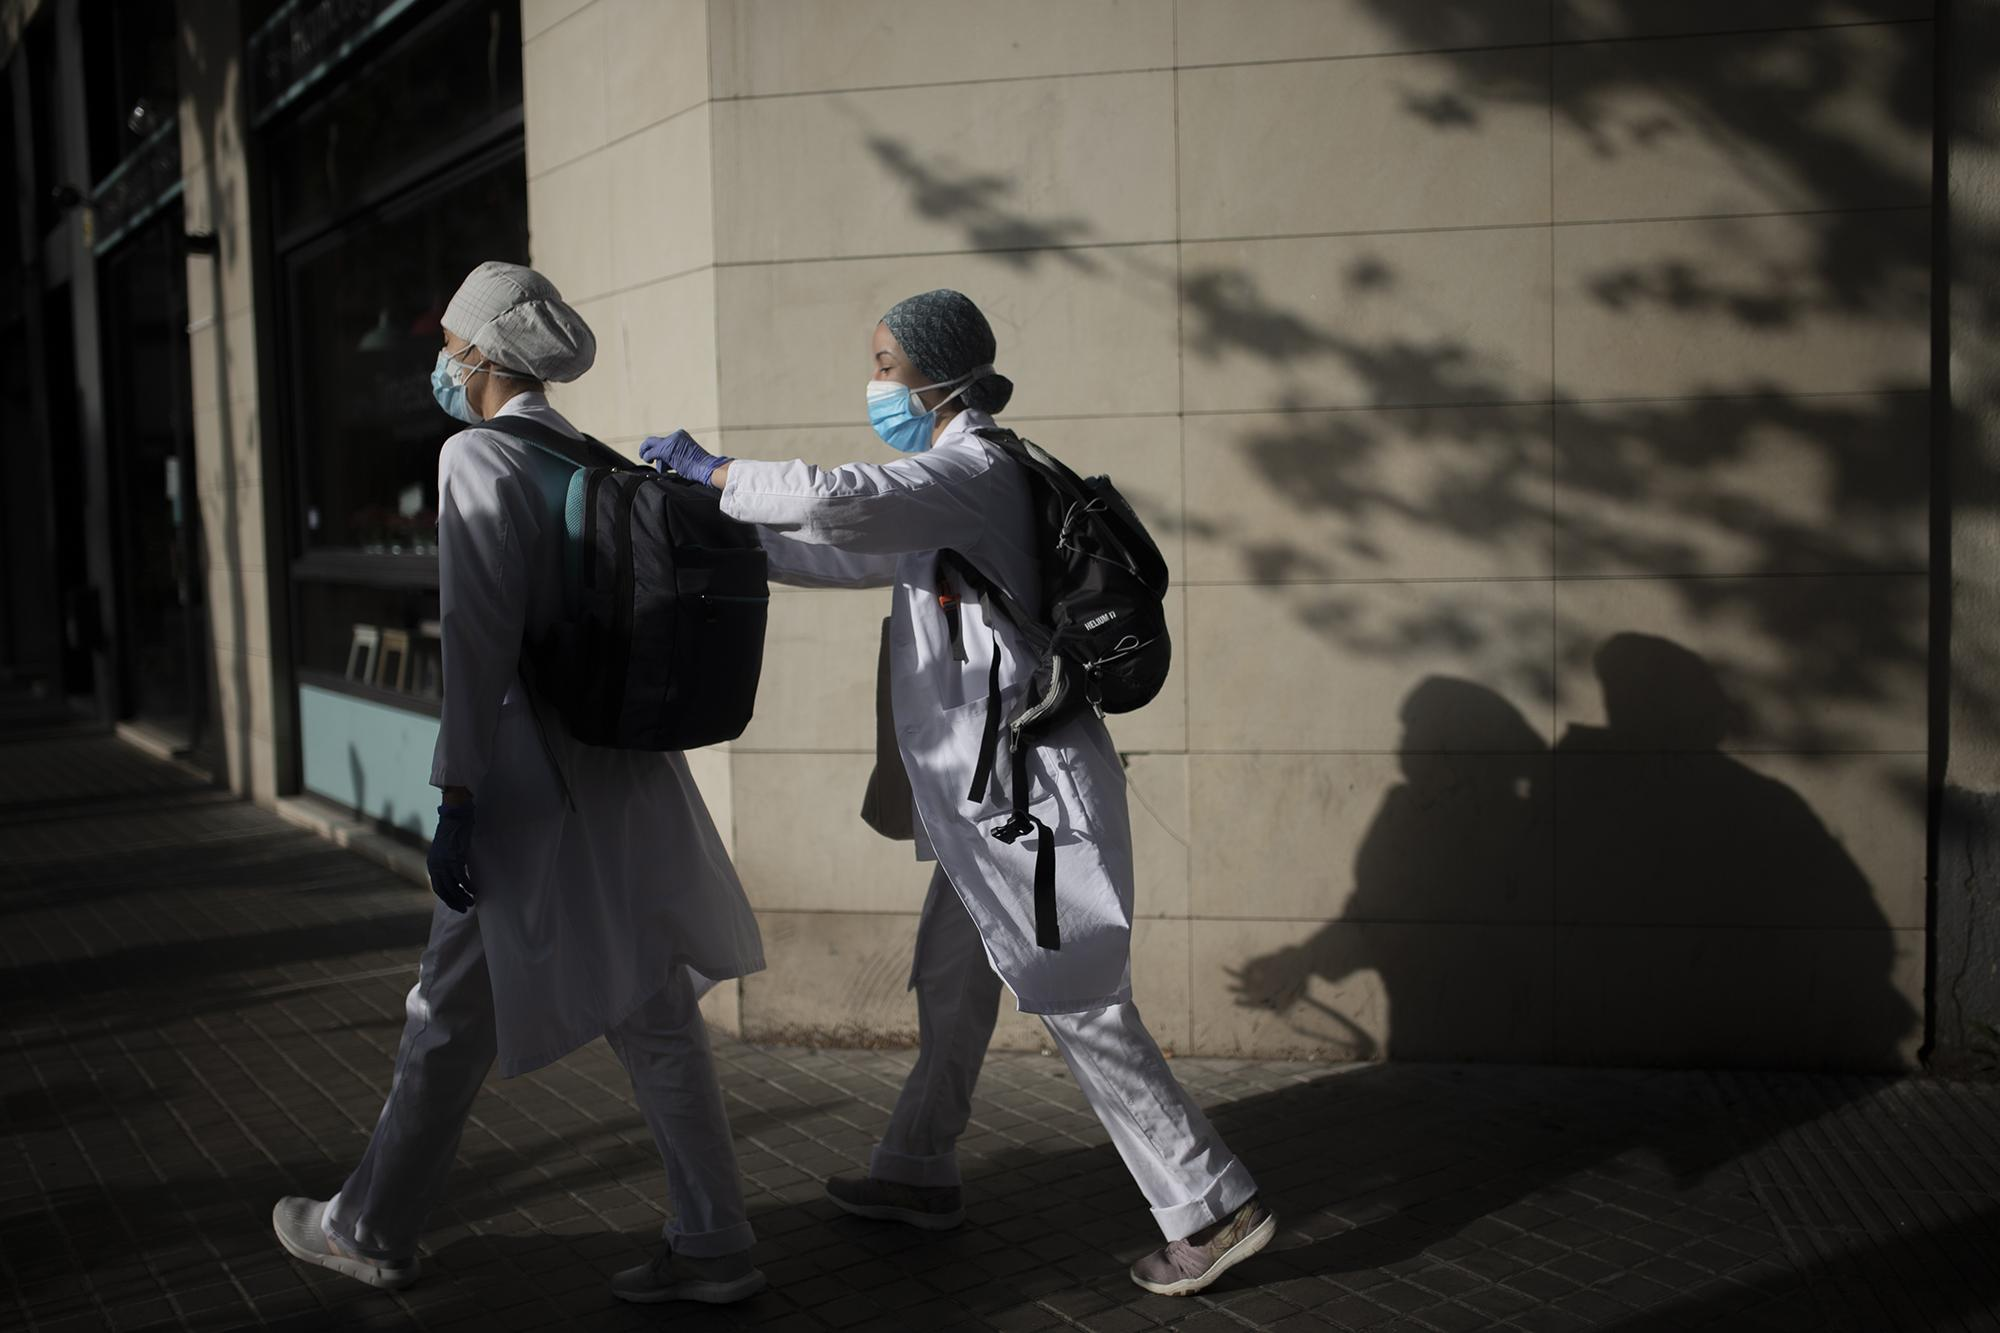 Nurses Sumia and Judit walk to patients homes during the COVID-19 virus outbreak in Barcelona, Thursday , April 16.